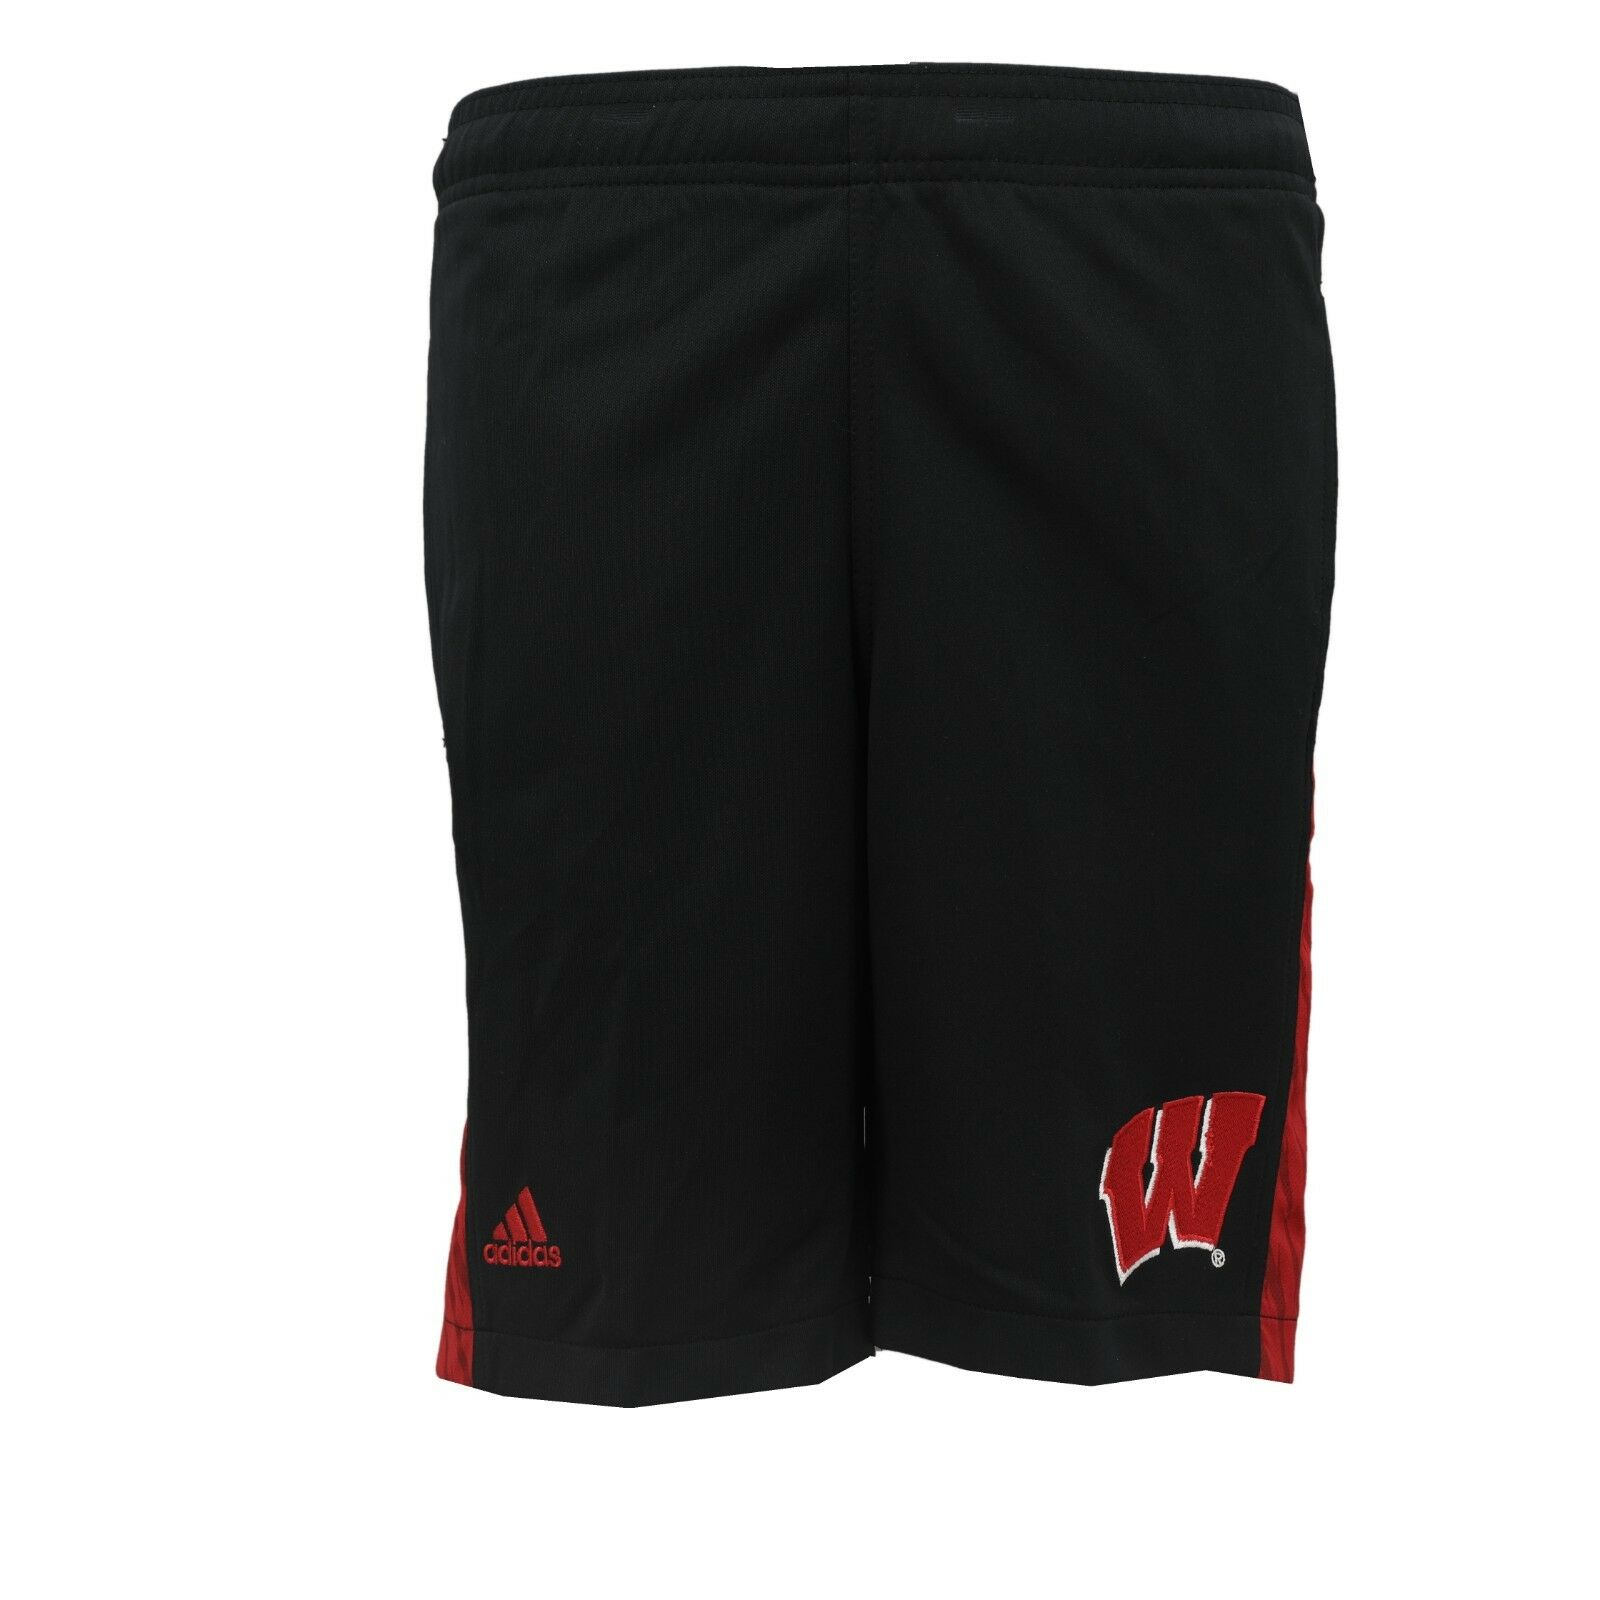 966d4614 Details about Wisconsin Badgers Official NCAA Kids Youth Size Athletic  Basketball Shorts New